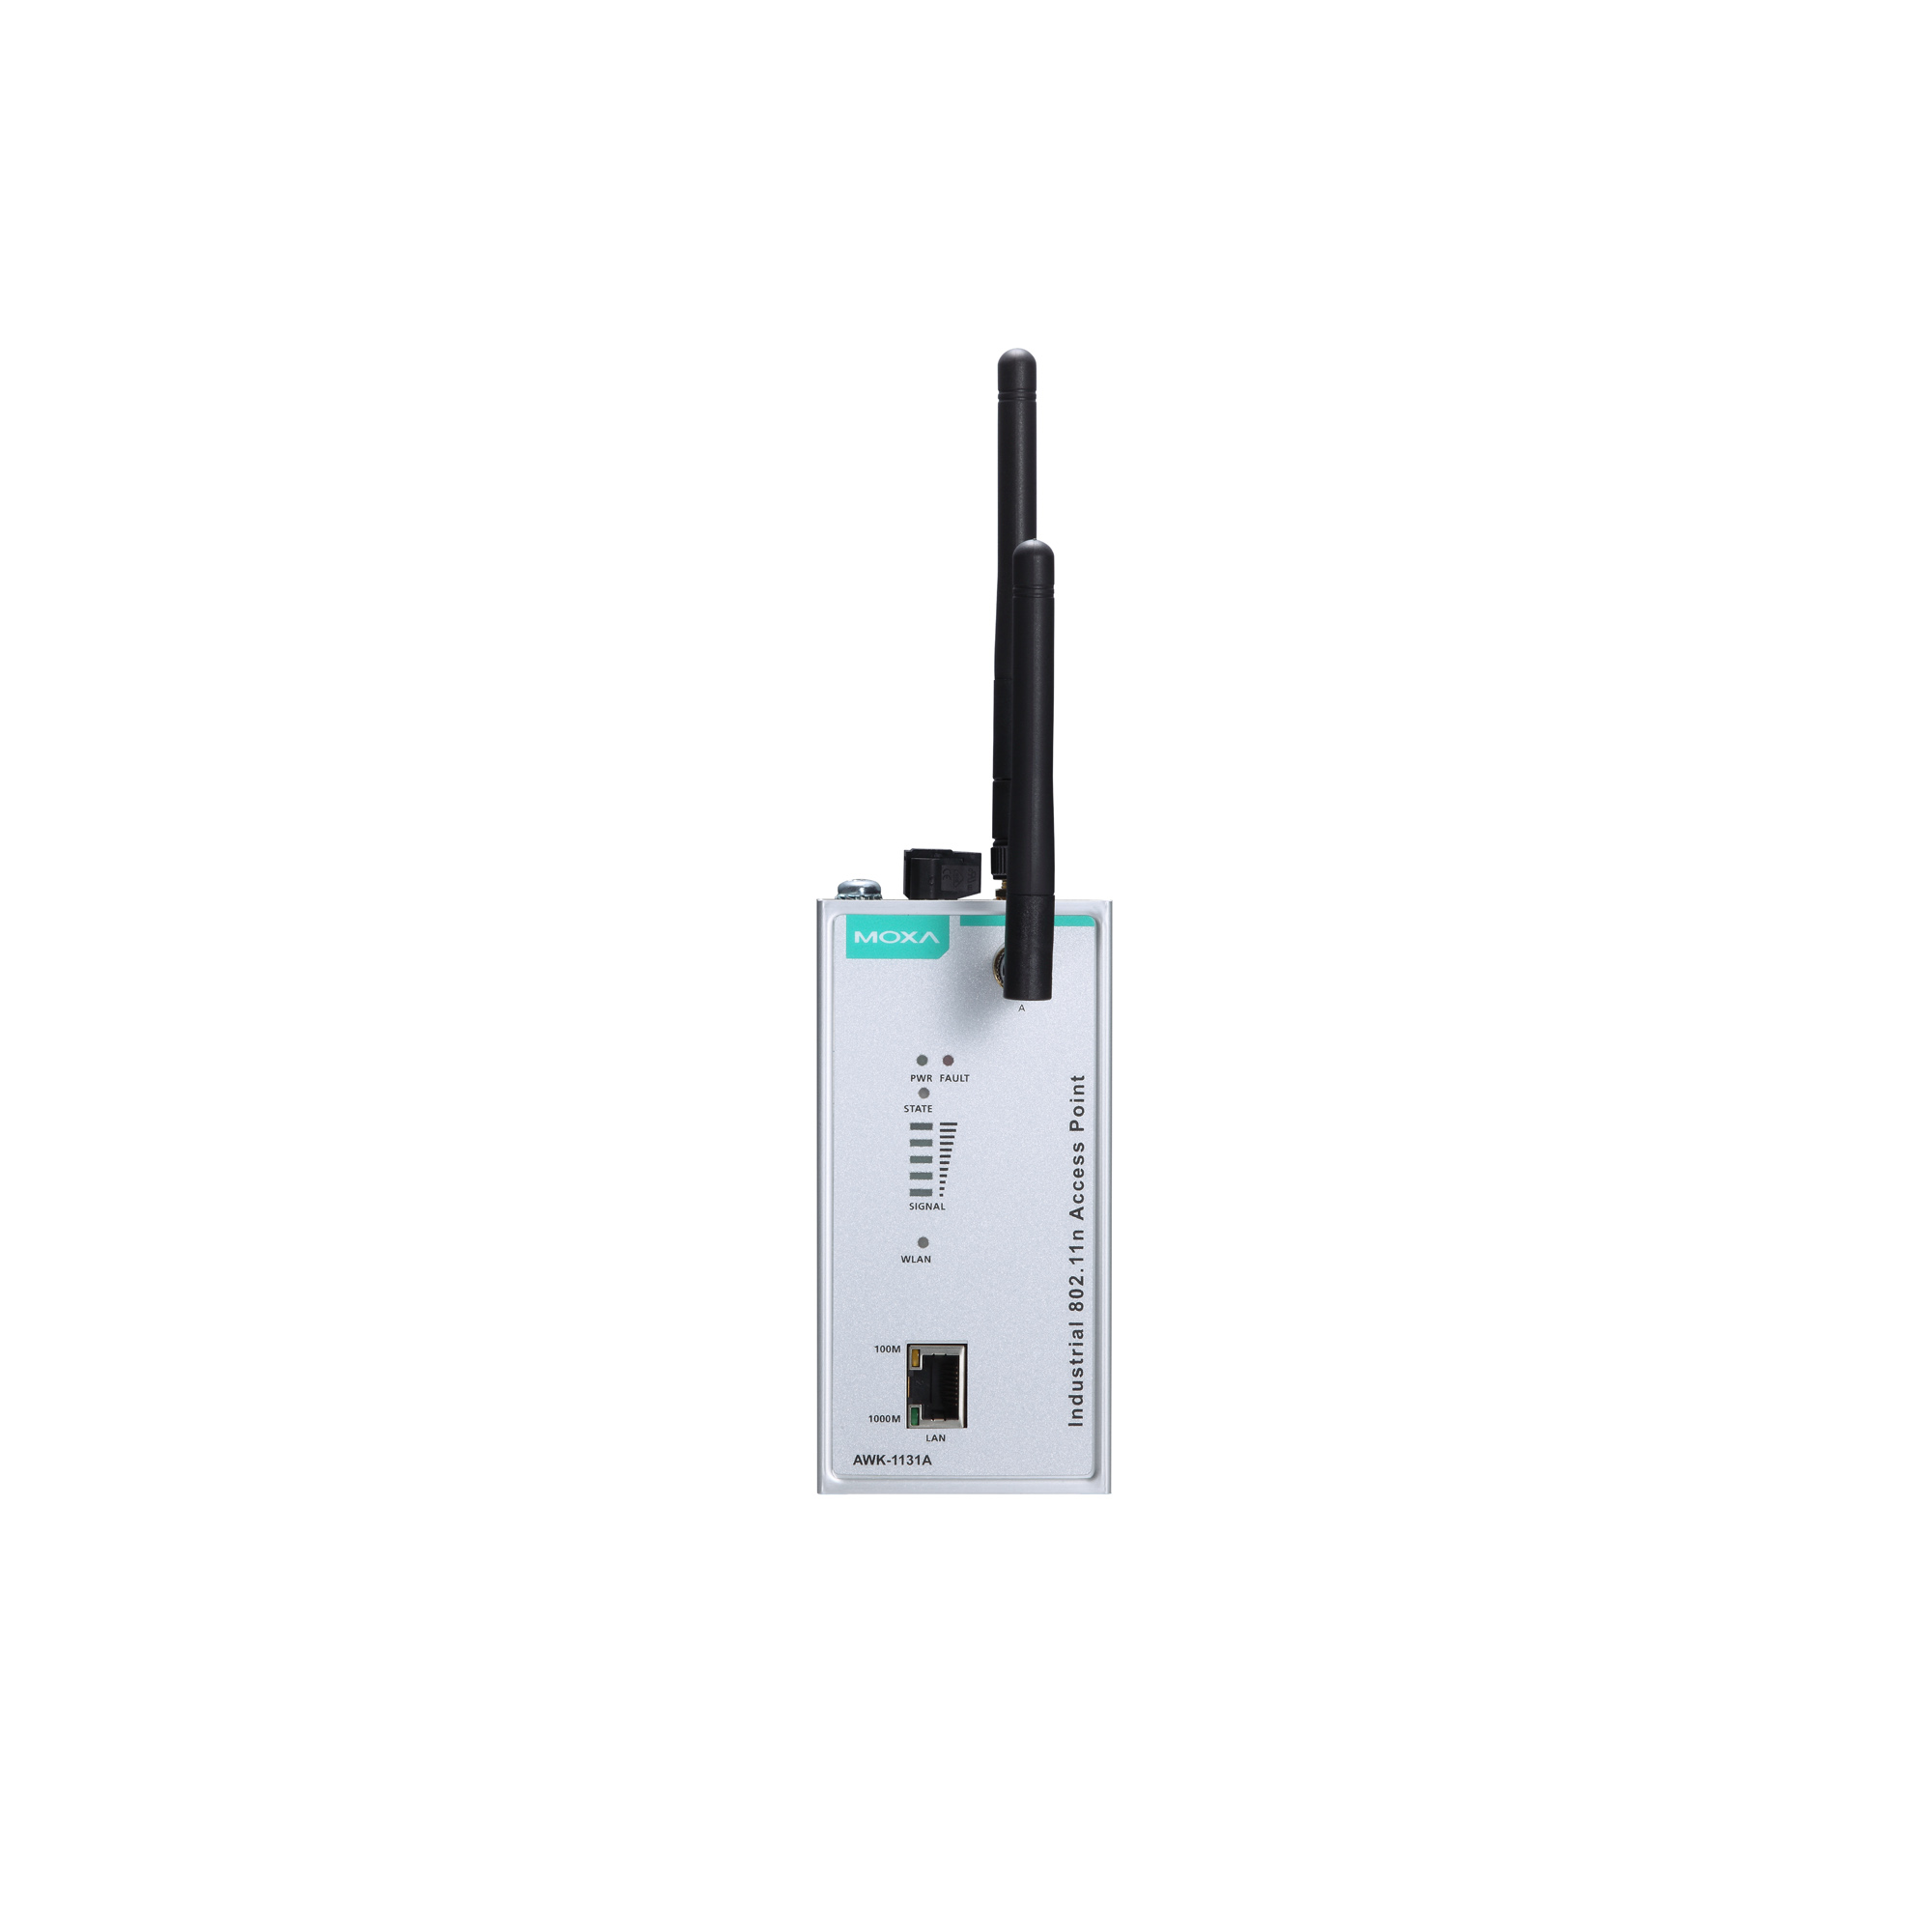 AWK-1131A Series - WLAN AP/Bridge/Client | MOXA